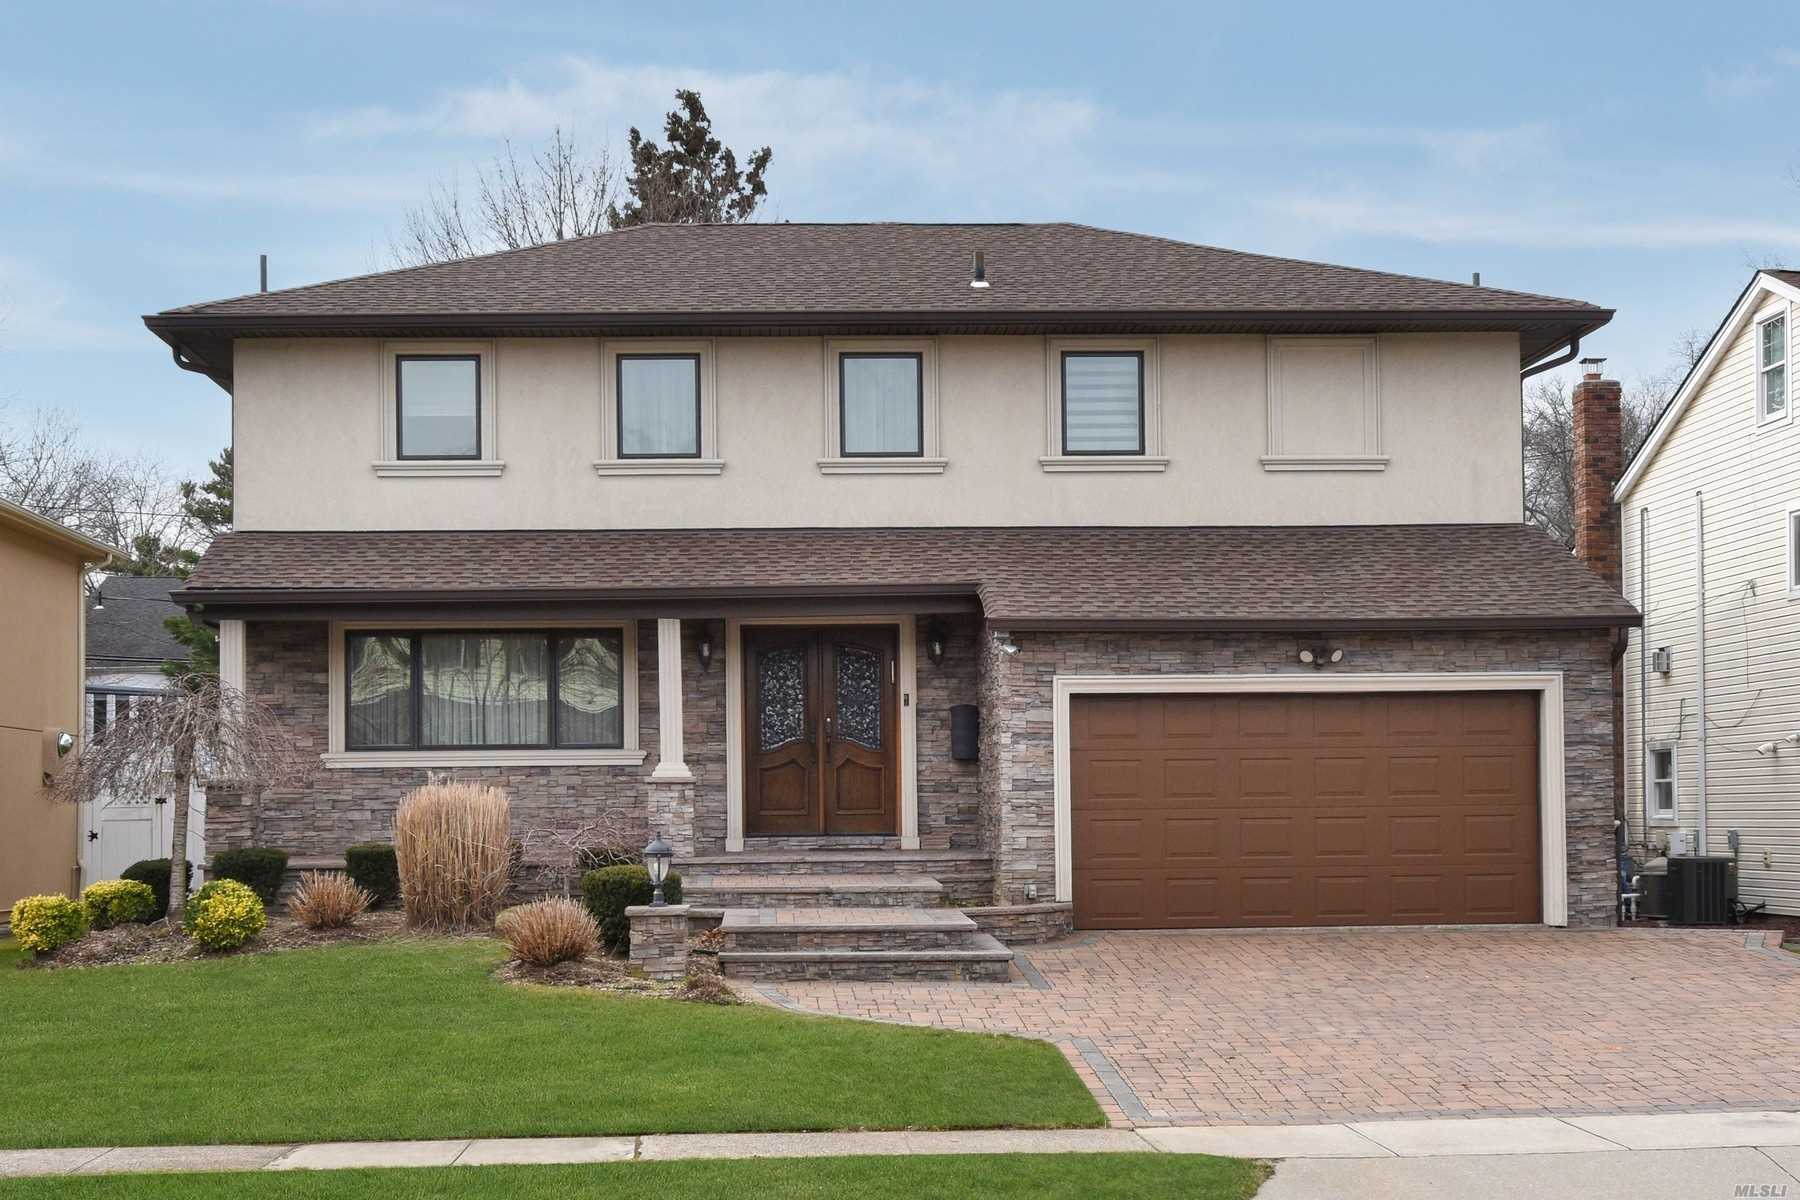 Welcome Into This Young Gut Renovated In 2010 5 Bedroom 3.5 Bath Colonial Home That Offer Gourmet Eik, Formal Drm That Extends Into The Living Rm, Beautiful Master Suite, Full Finished Basement With An Extra Brm And A Full Bath, Manicured And Paved Property... And Much More.